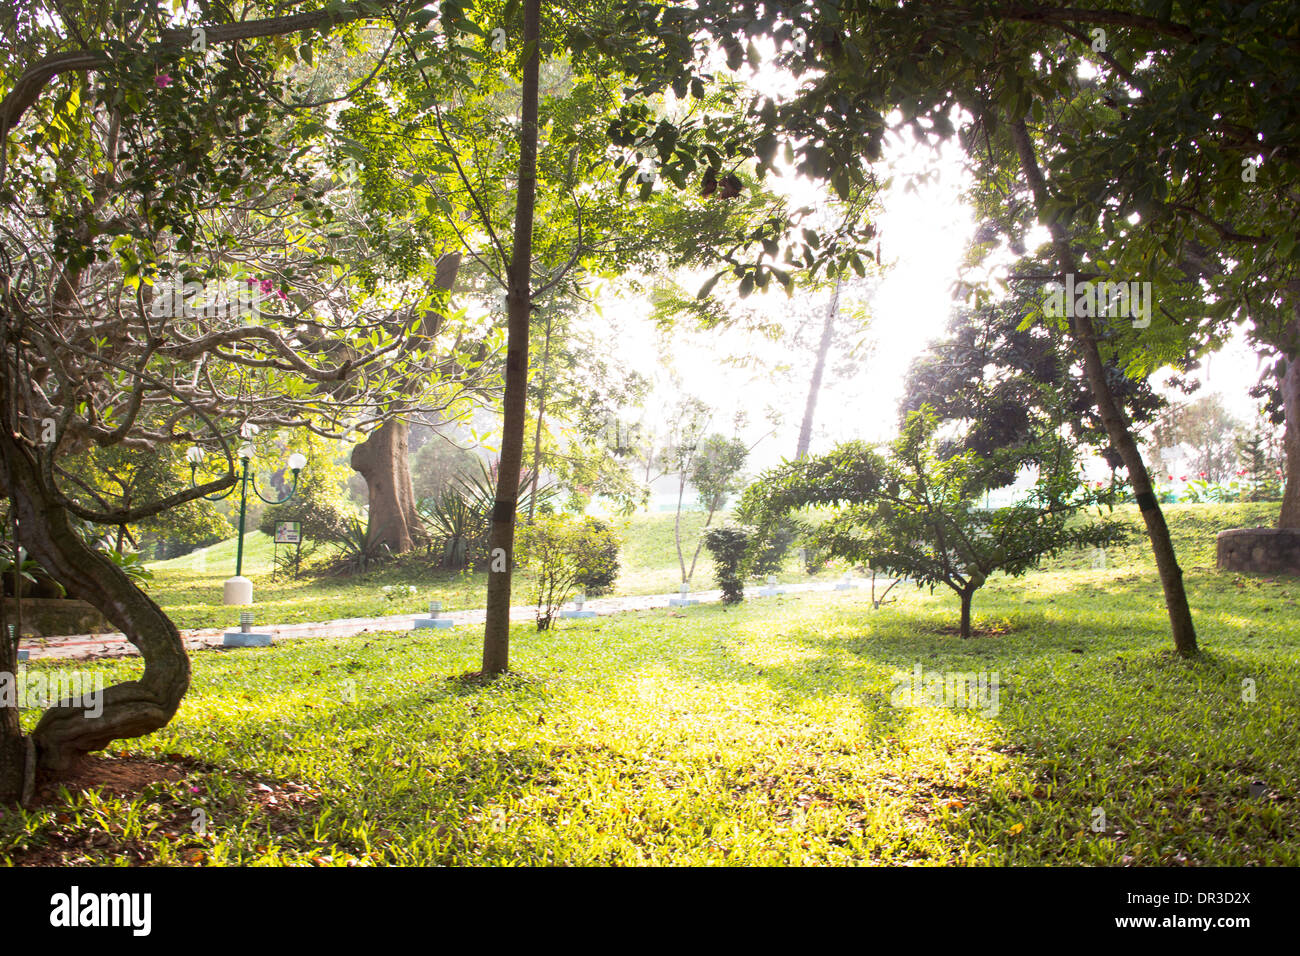 Scenic view of green gardens in the mist of a good morning - Stock Image